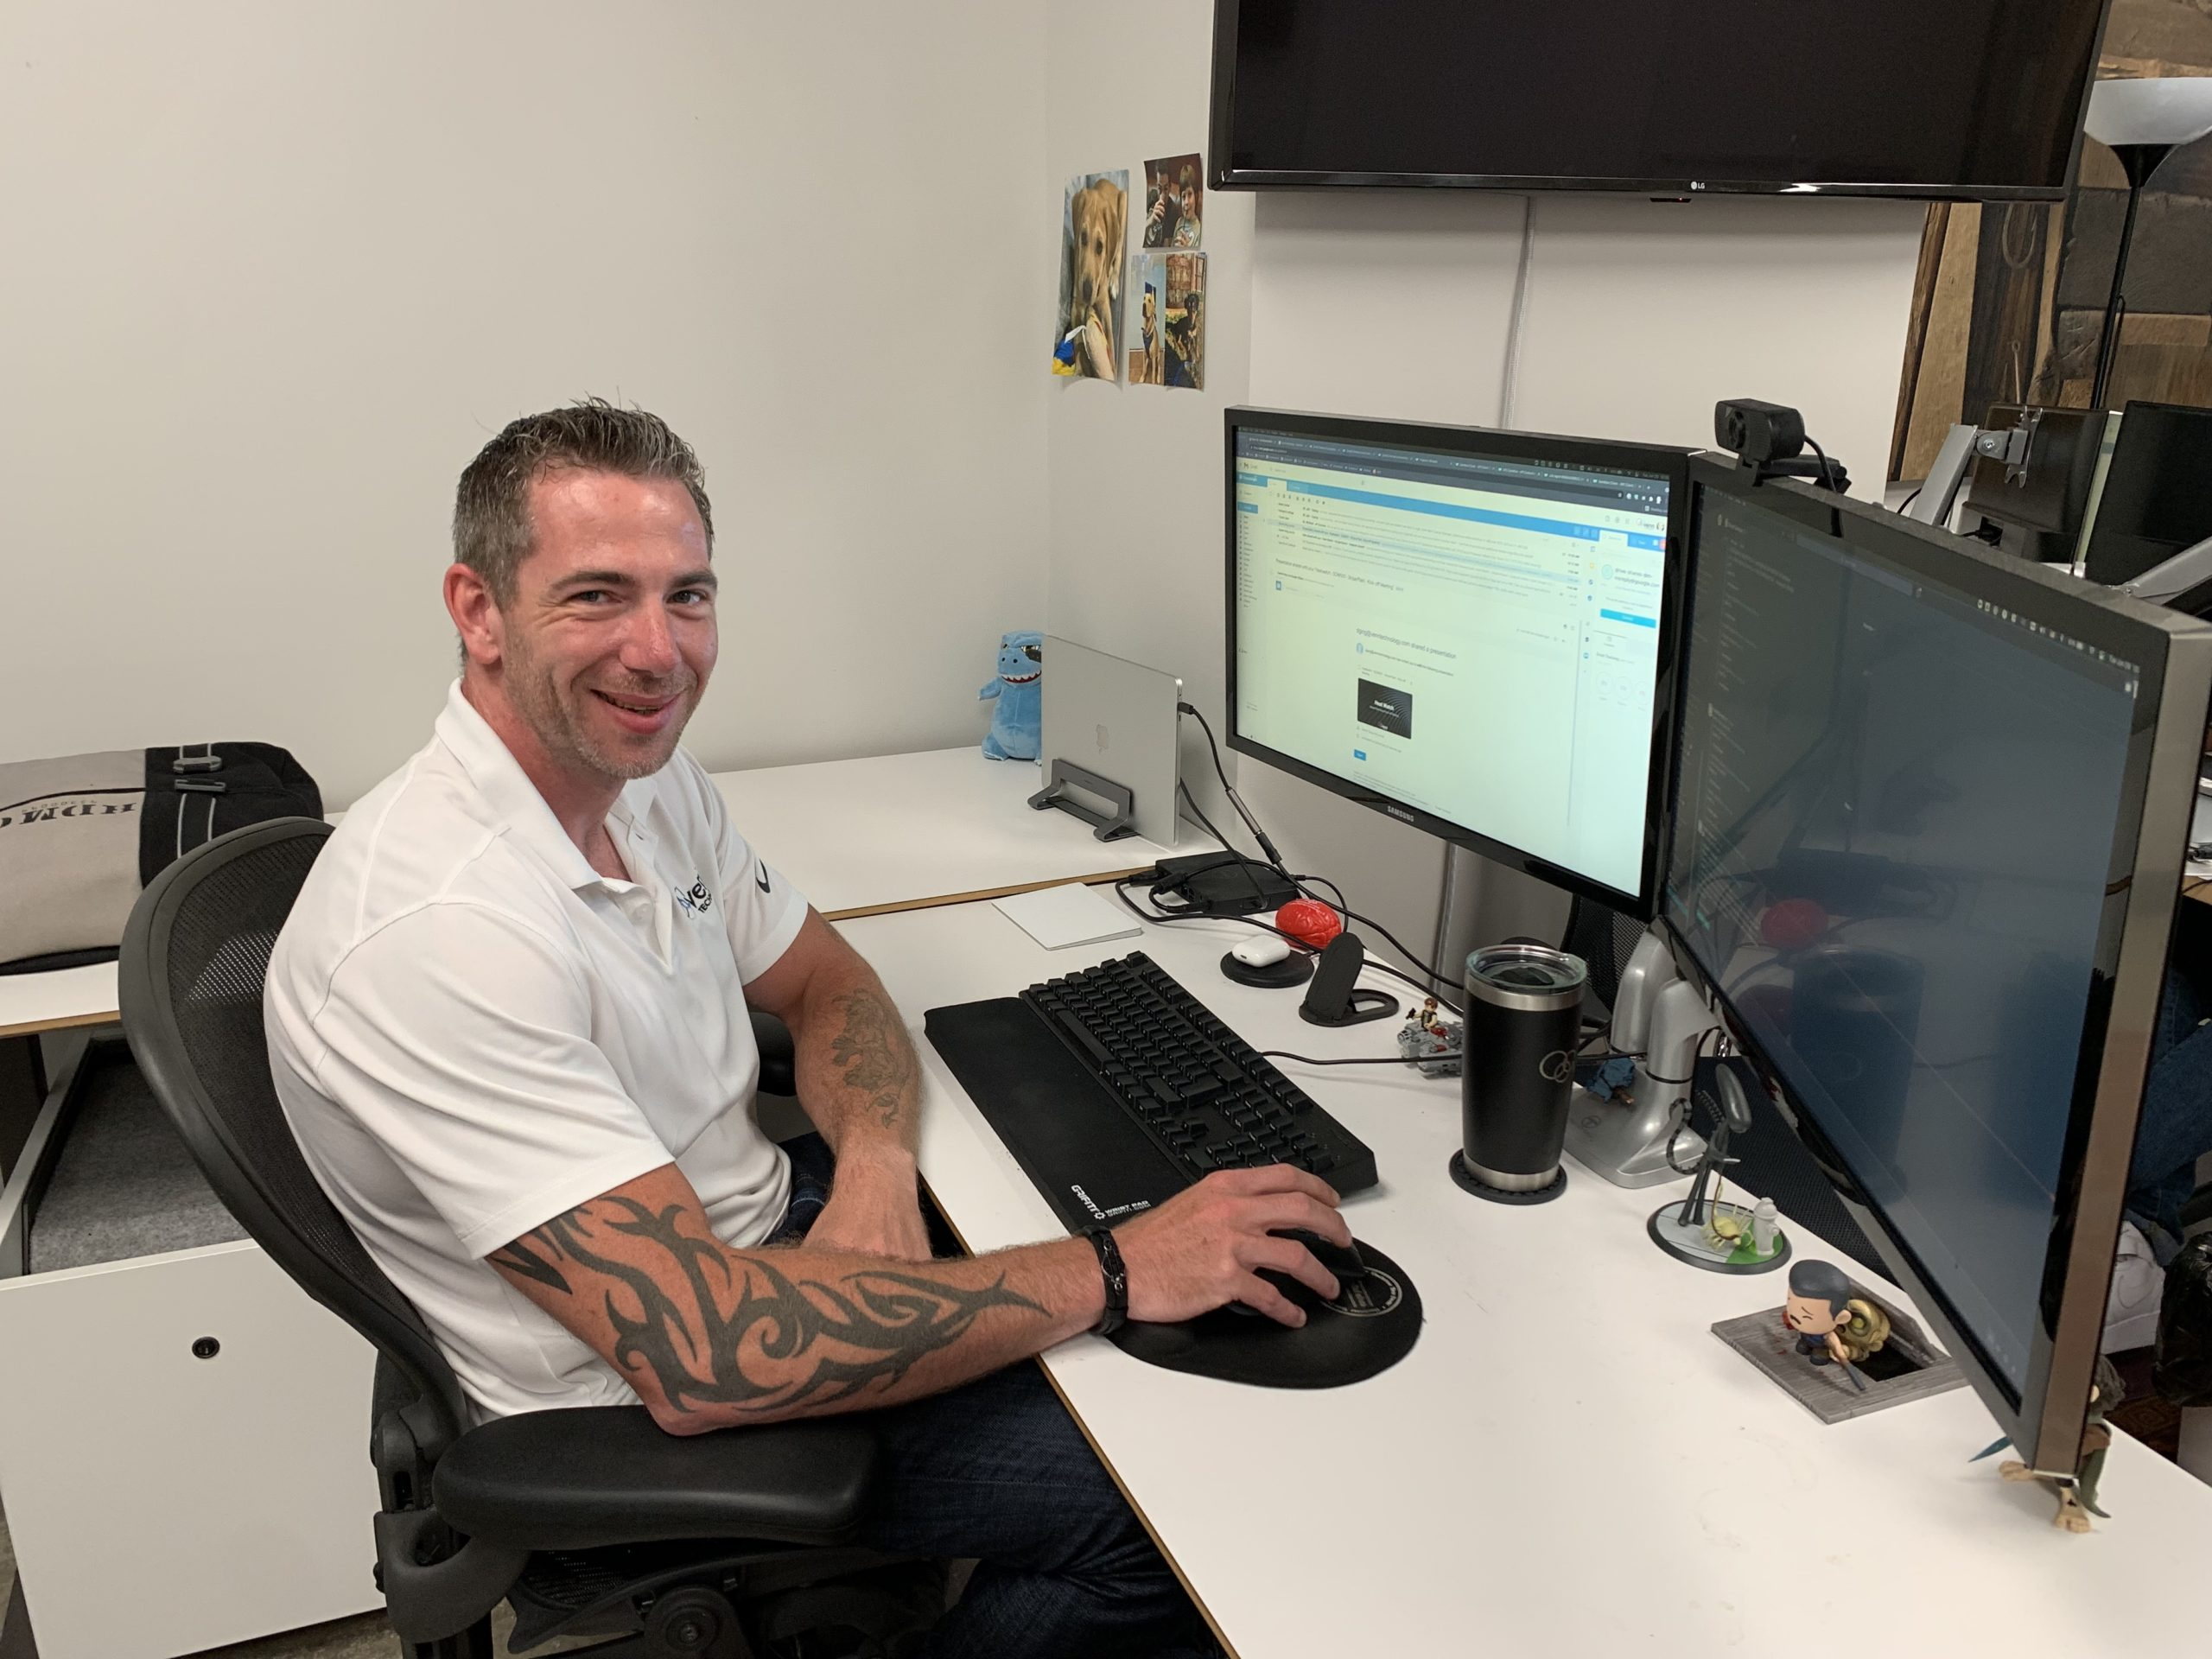 Steve Micklewright Venn Integration Consultant sitting at his workspace